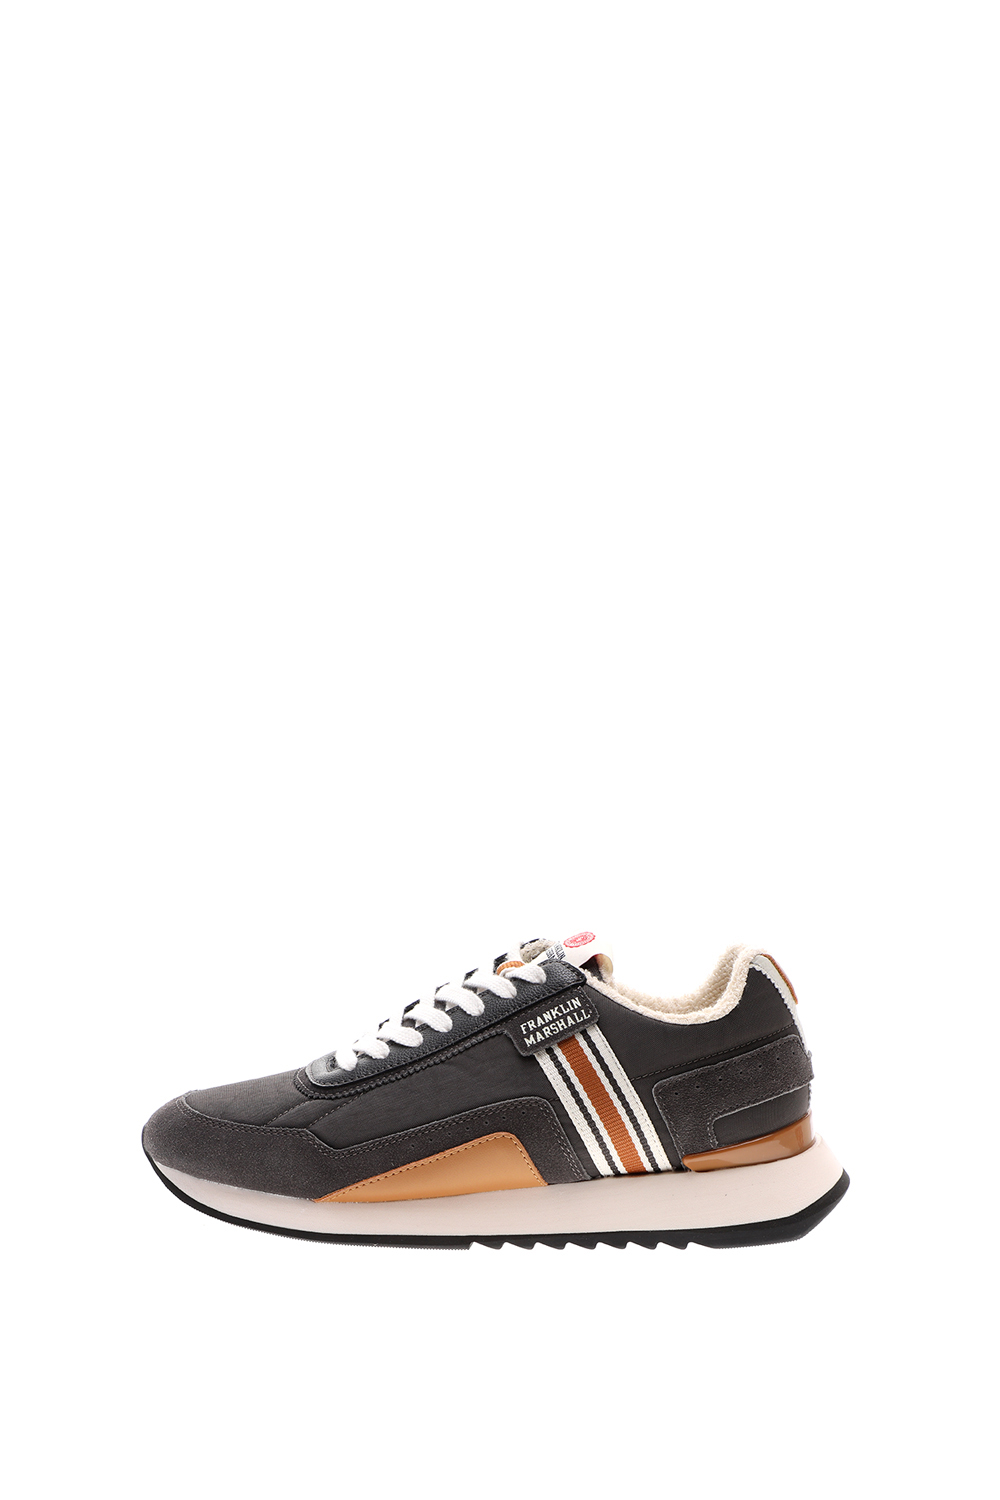 FRANKLIN & MARSHALL – Ανδρικά sneakers FRANKLIN & MARSHALL EPSILON BOWL γκρι καφέ